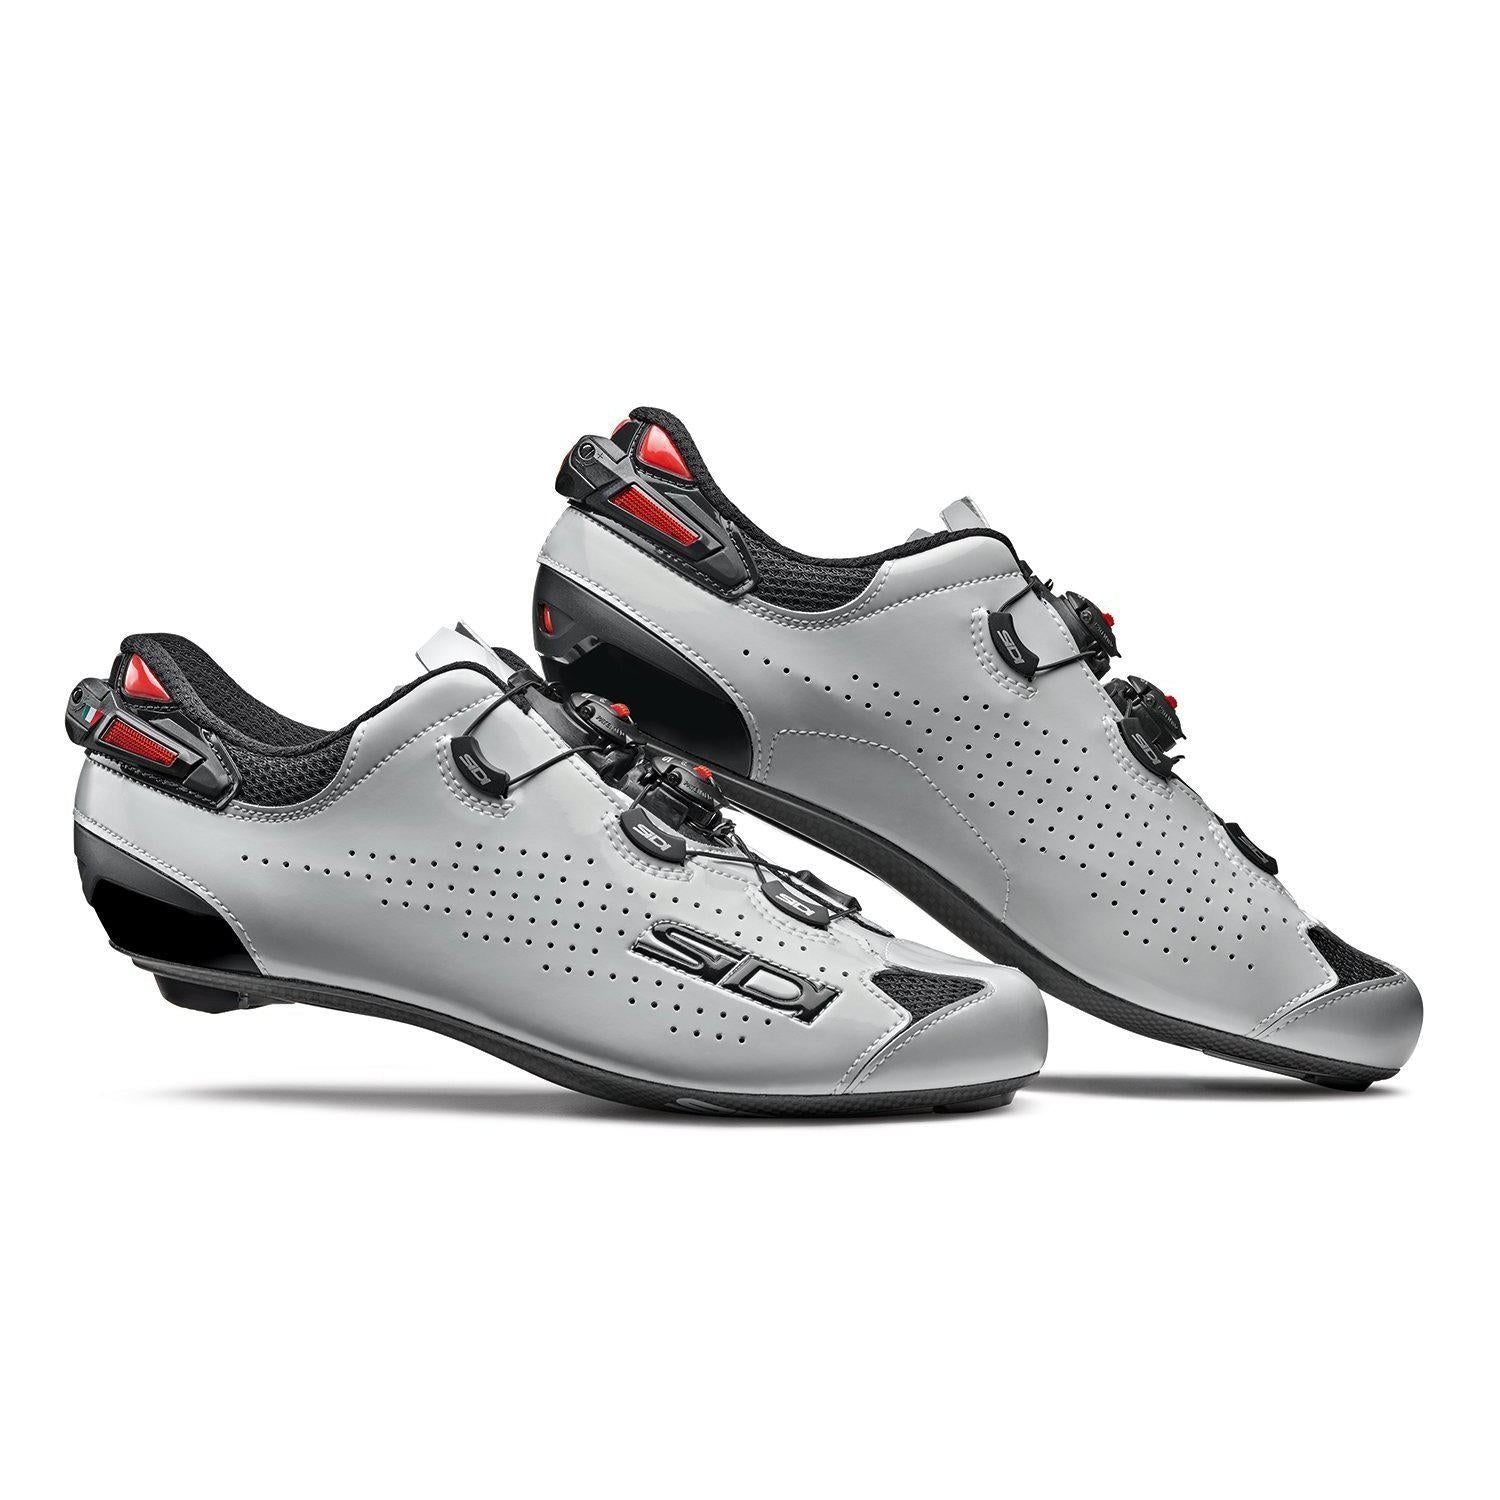 Sidi-Sidi Shot 2 Road Shoes-Black/Grey Lucindo-38-SISHOT2NEGRILU38-saddleback-elite-performance-cycling